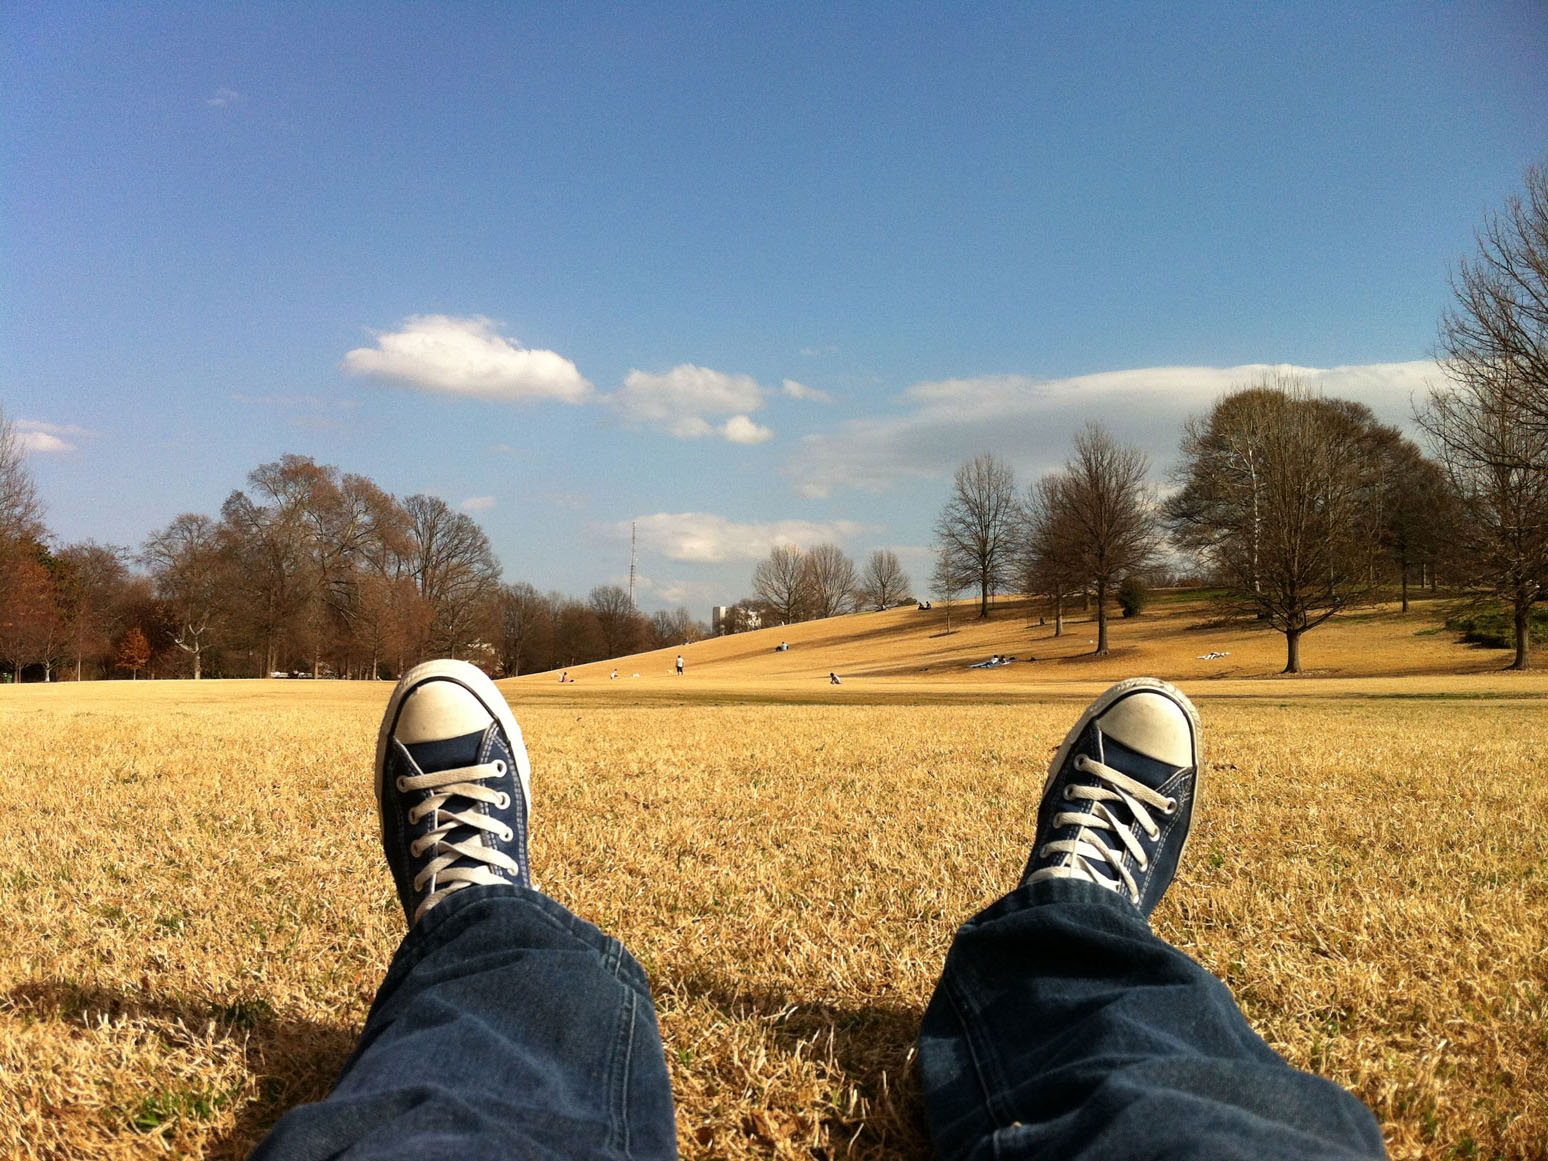 Pause with Alexis - Meditation Blog